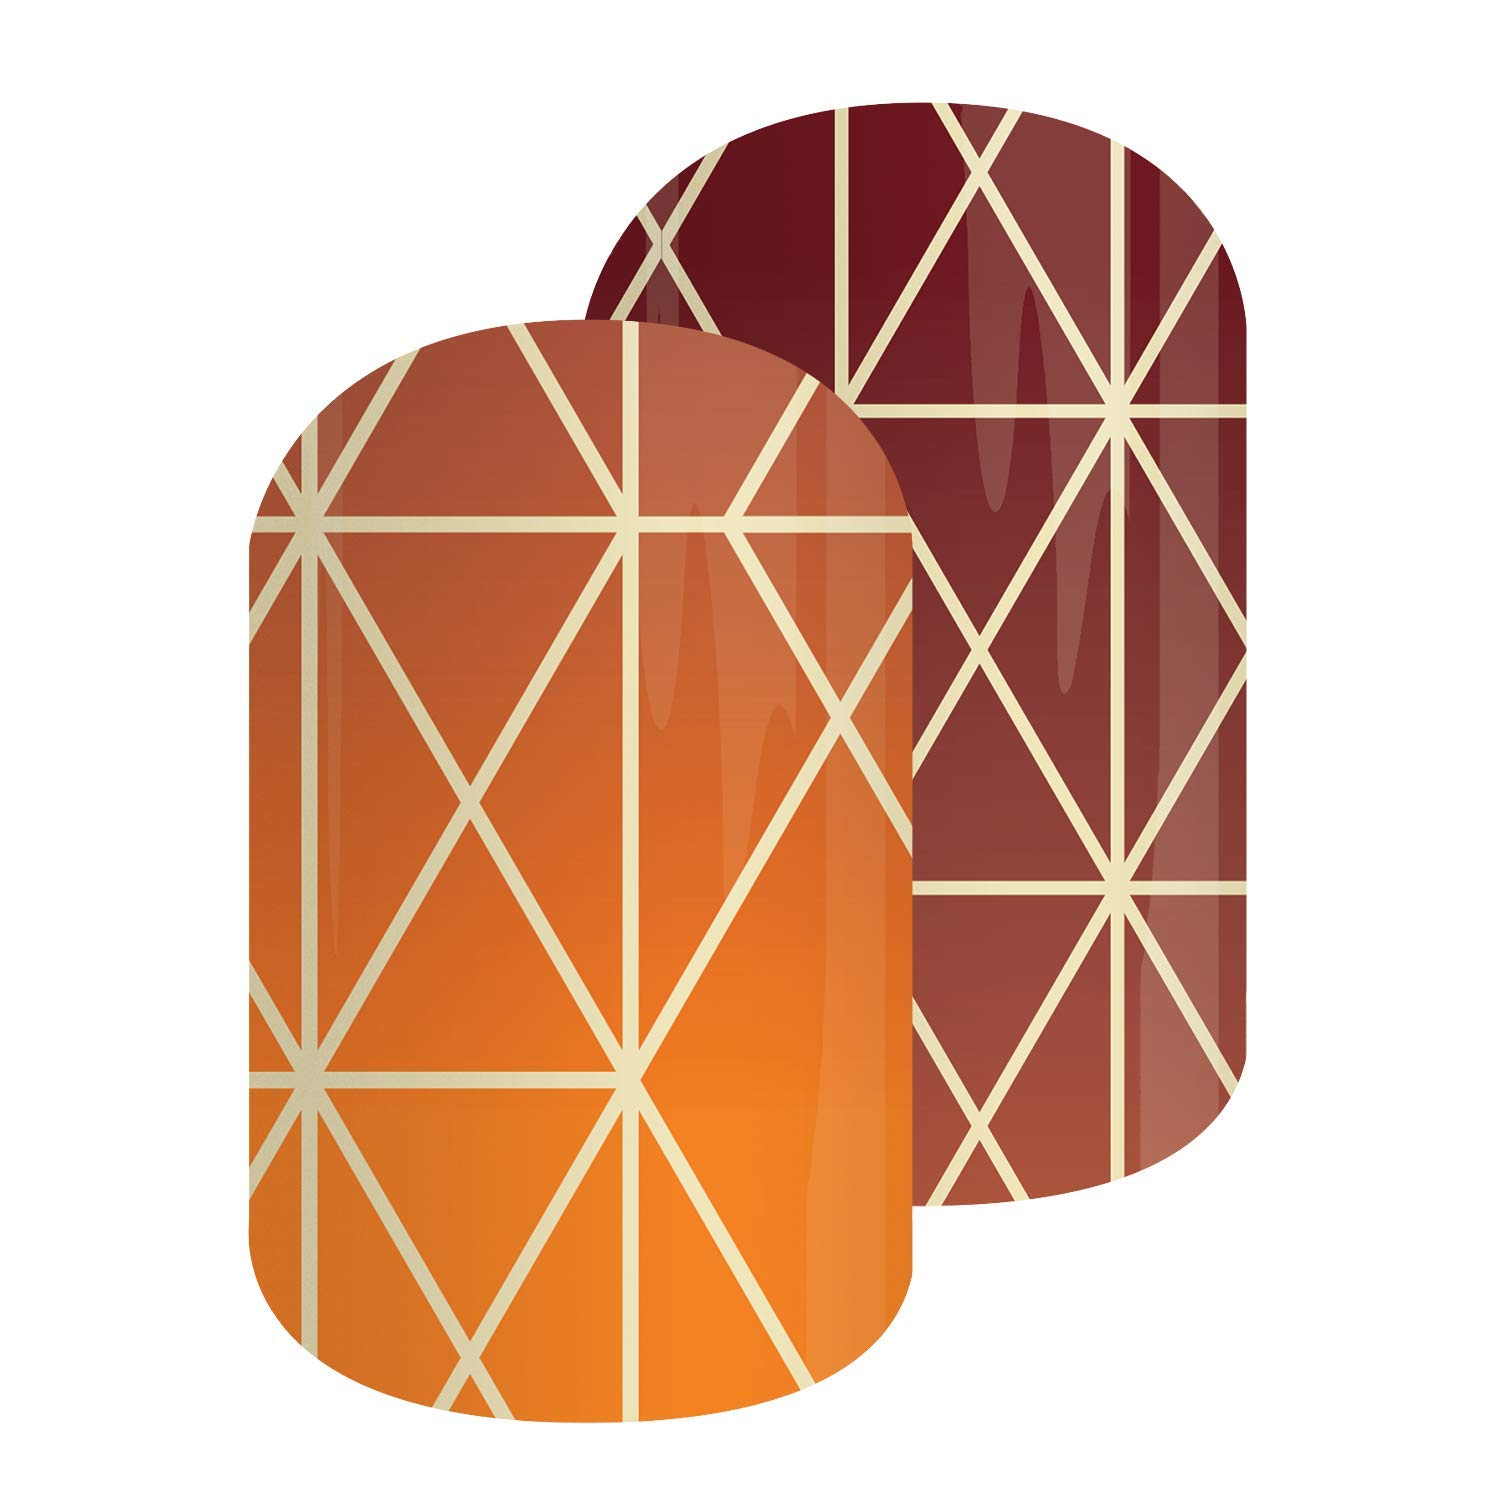 October 2019 Trendy 10 | Jamberry Nail Wraps | Nail Decal | Autumn Seasonal Nail Art Stickers | Perfect Gift for DIY Easy Nail Art (Half Sheet - 1 manicure / 1 pedicure, Stained) by BeneYOU